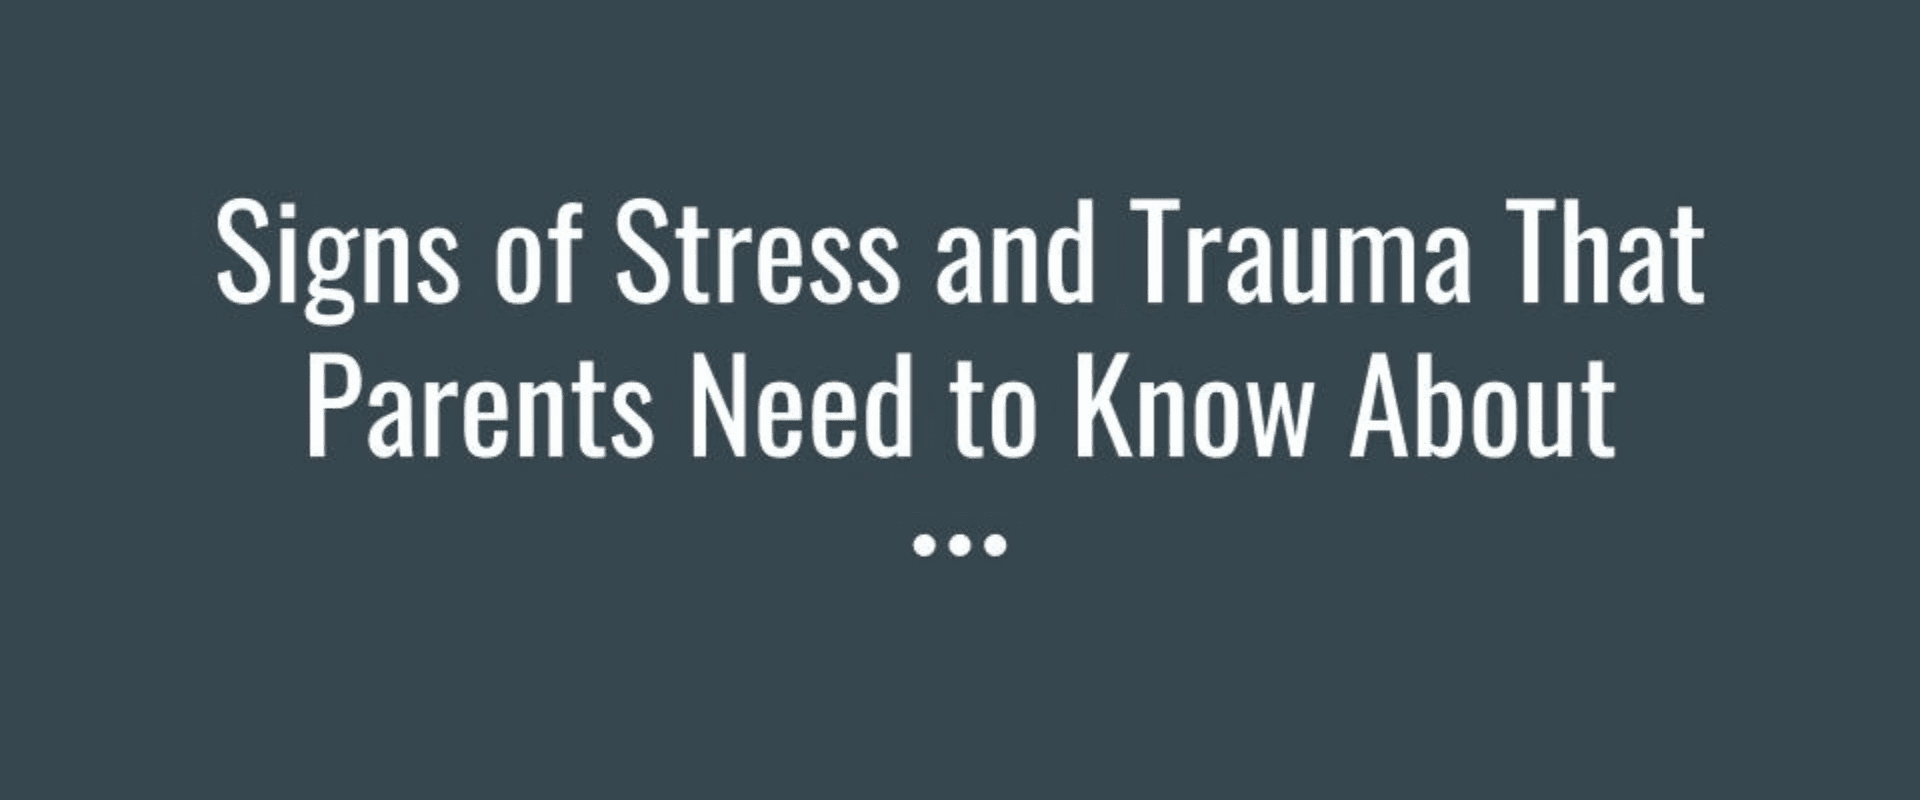 Signs of Stress and Trauma Video Presentation